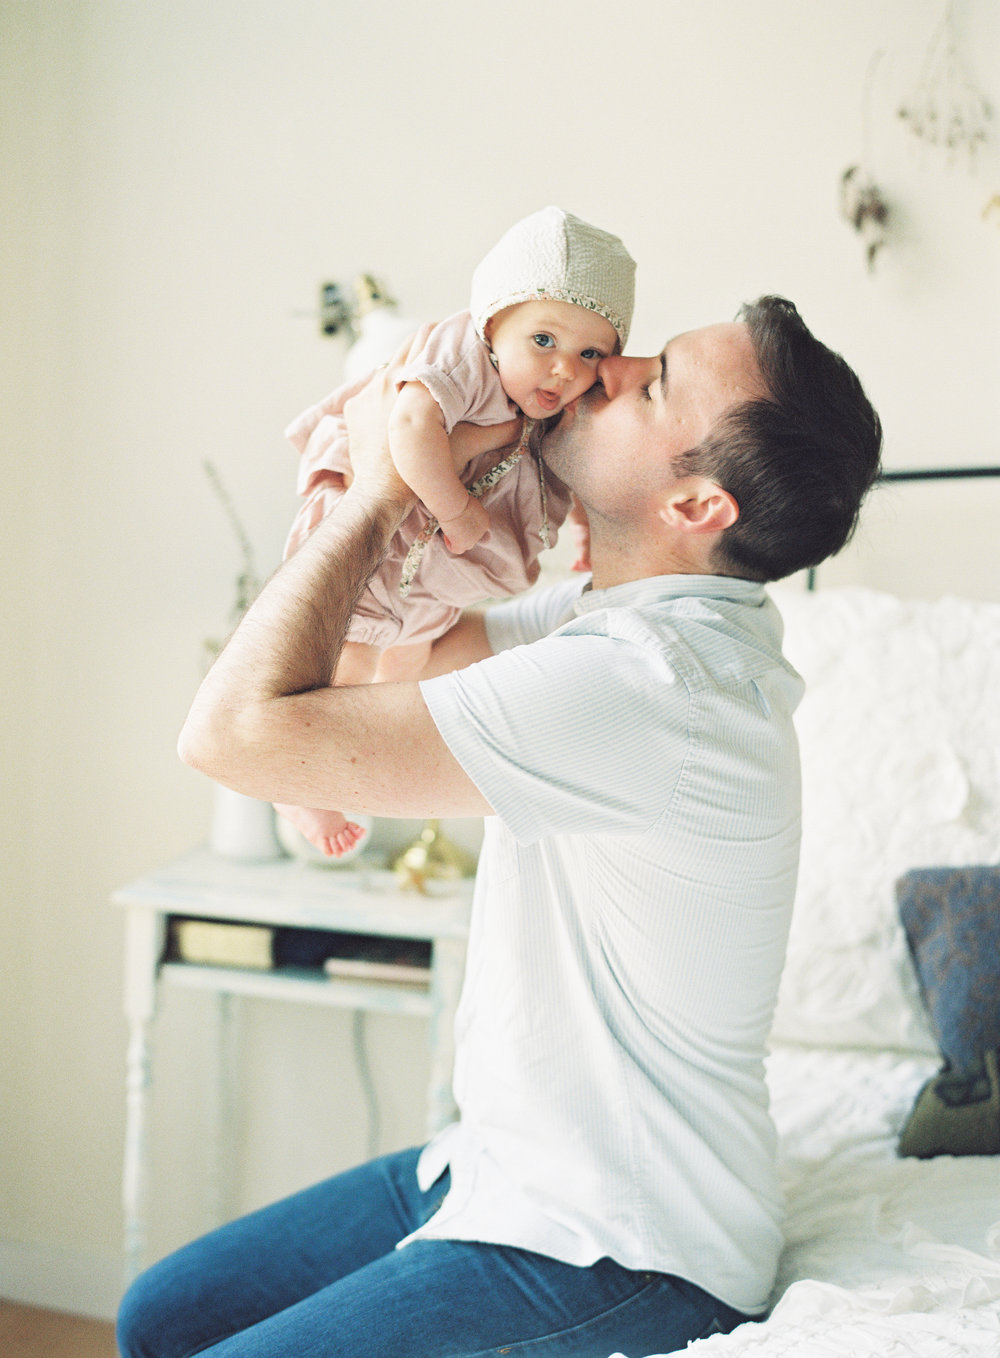 Meghan Mehan Photography - San Francisco Newborn and Family Photographer 049.jpg